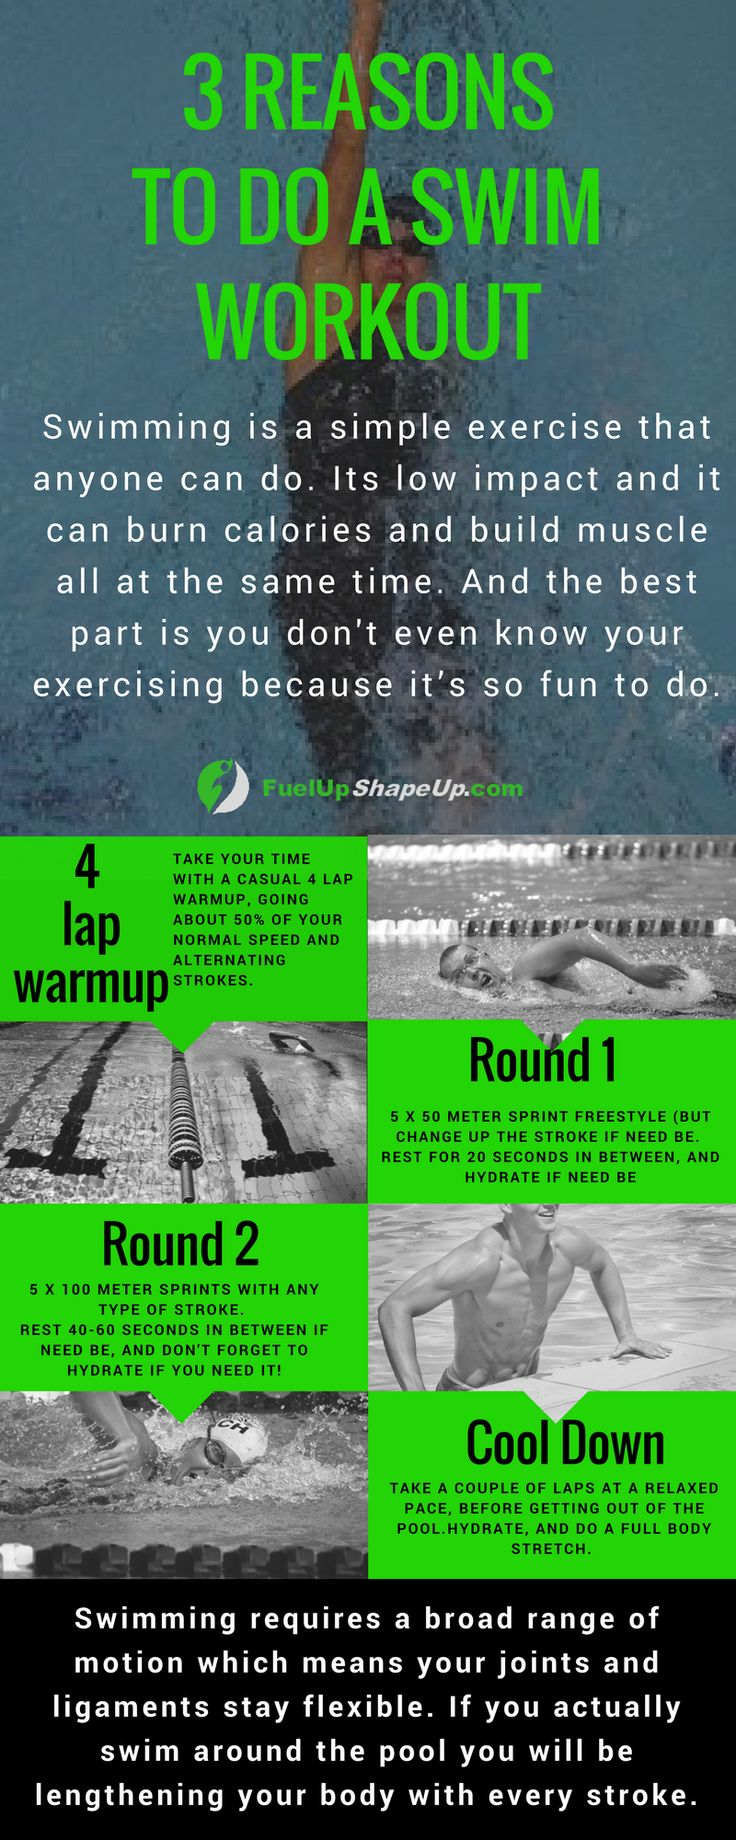 With the summer coming up, get ready for the swimming season! Check out these 3 benefits of a swimming workout and find out how to get your beach body ready here http://fuelupshapeup.com/3-reasons-why-you-should-be-swimming/